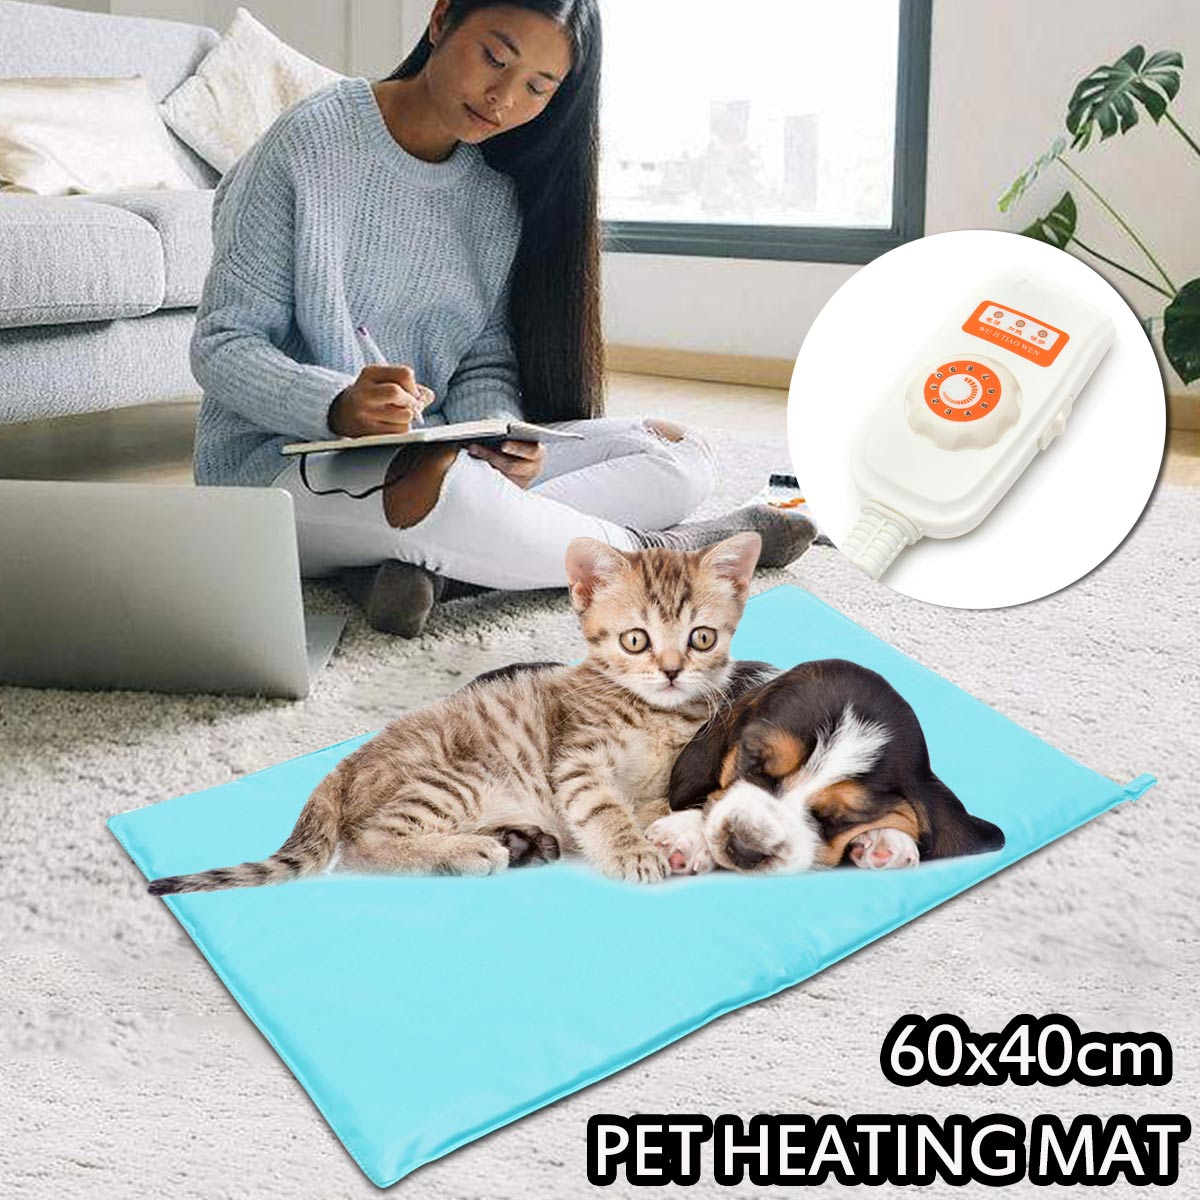 30W 10 Level Electric Heater Pad Adjust Pet Heating Mat Waterproof Warming Winter Pad Dog Cat Bed 60x40cm